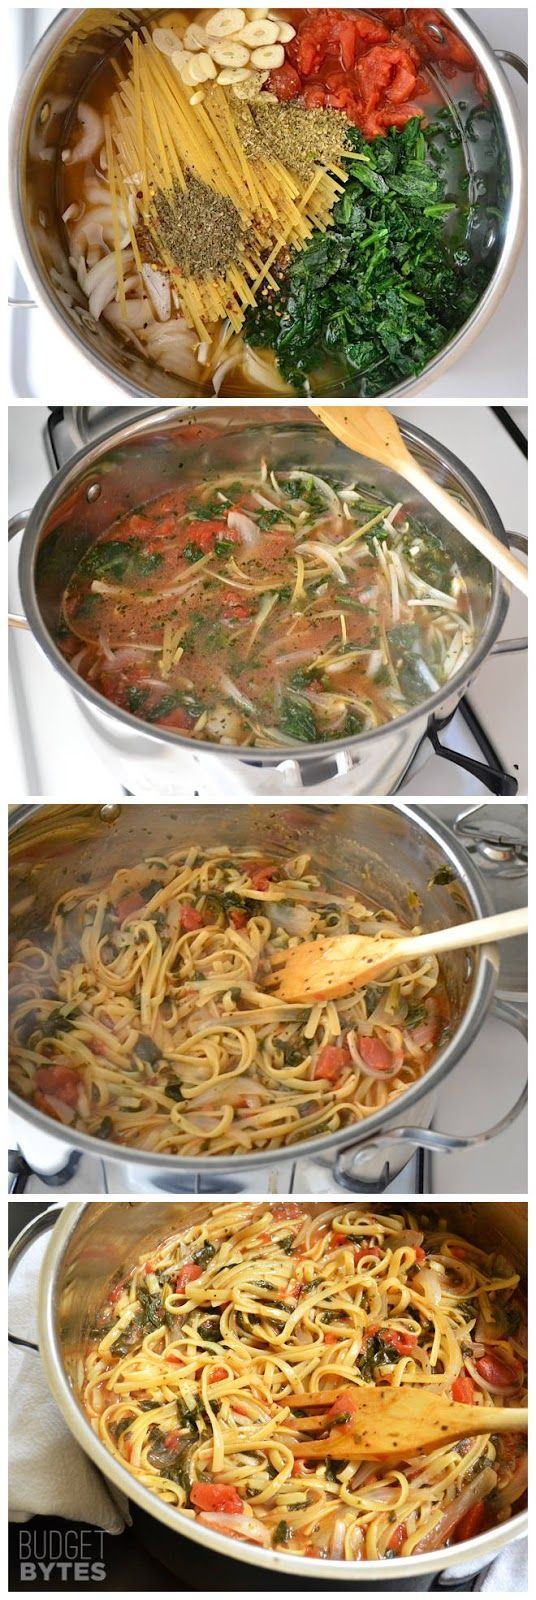 Italian Wonderpot:  4 cups vegetable broth 2 Tbsp olive oil 12 oz. fettuccine 8 oz. frozen chopped spinach 1 (28 oz.) can diced tomatoes 1 medium onion 4 cloves garlic ½ Tbsp dried basil ½ Tbsp dried oregano ¼ tsp red pepper flakes freshly cracked pepper to taste 2 oz. feta cheese - I've posted this before but there was no recipe